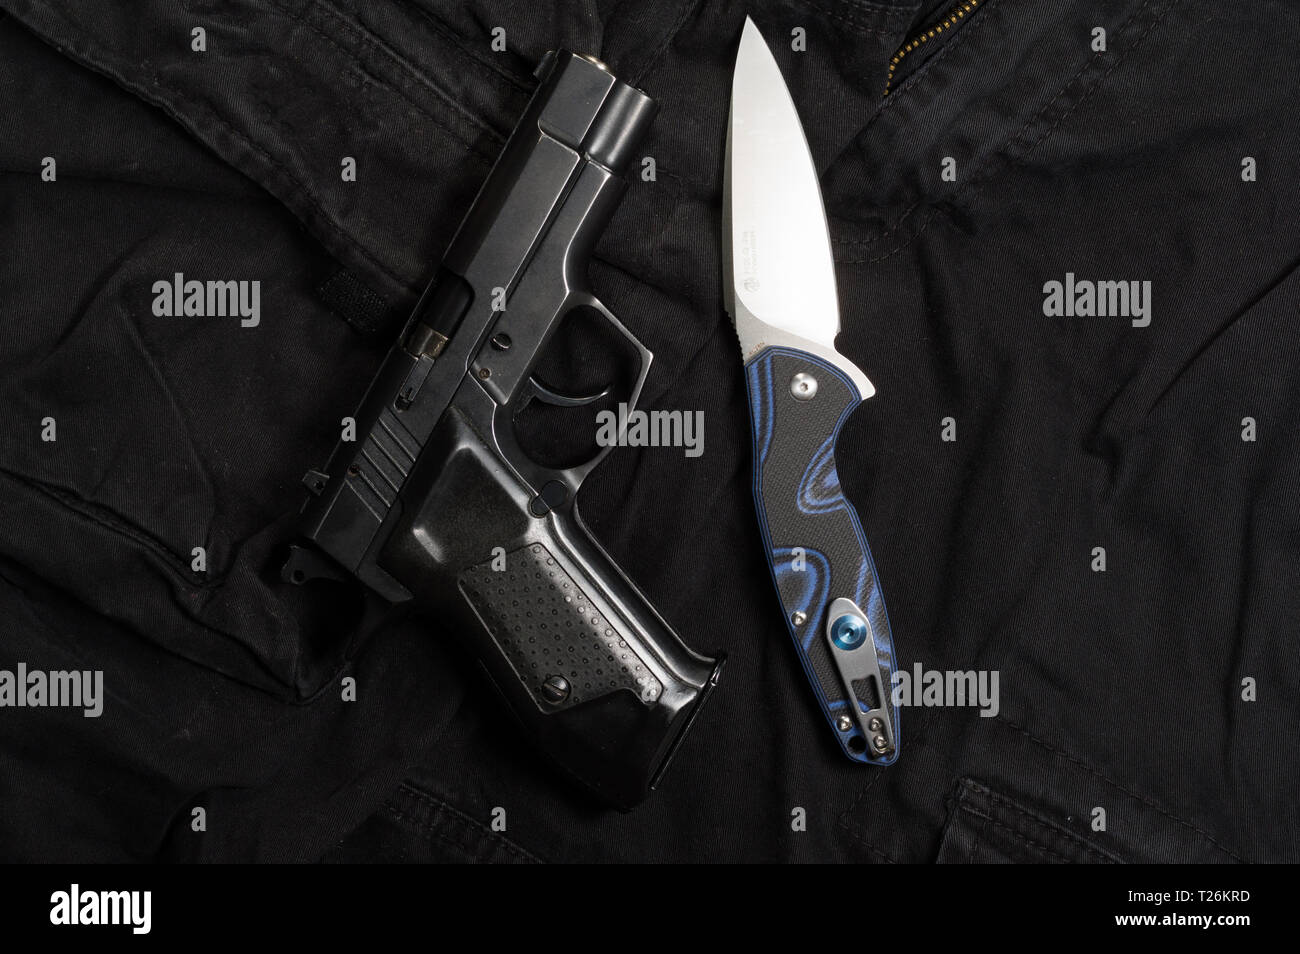 Firearm and knife. Weapons and men's clothing. Top. - Stock Image